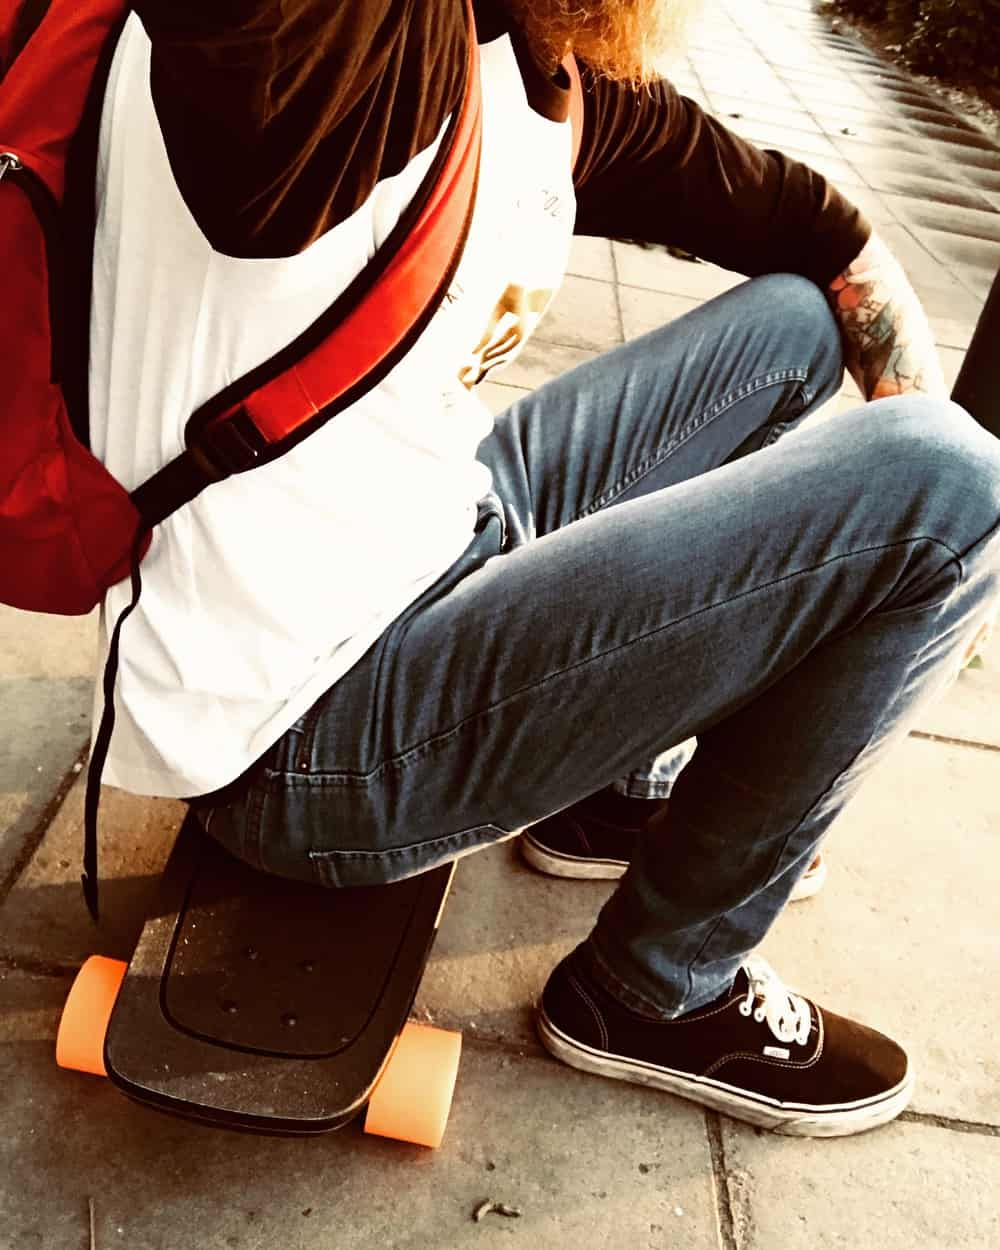 Electric skateboard guide: everything you should know